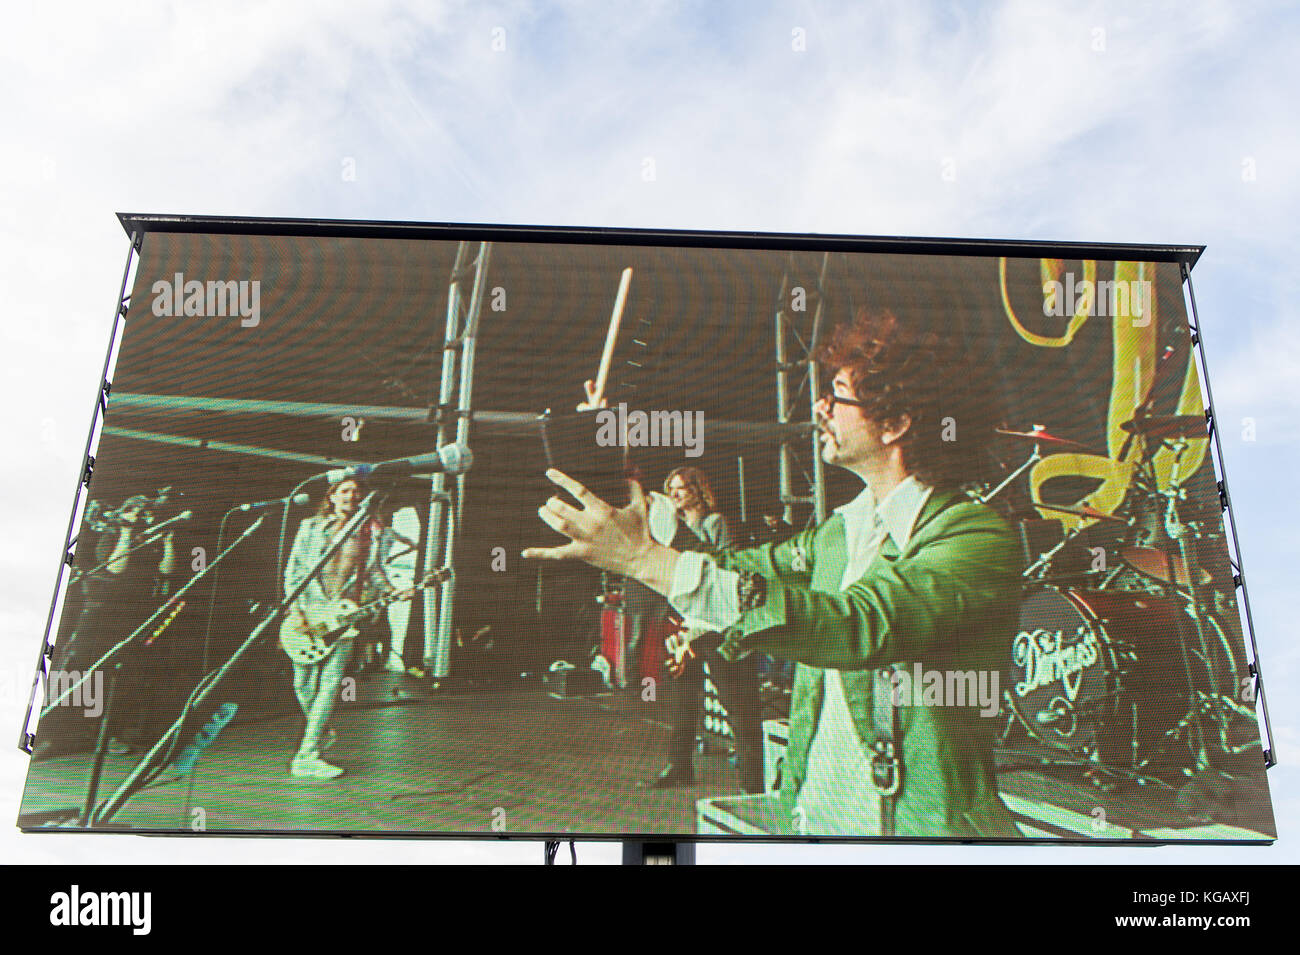 Rock band The Darkness on the big screen as it played its live set at Godiva Festival, Coventry, United Kingdom - Stock Image